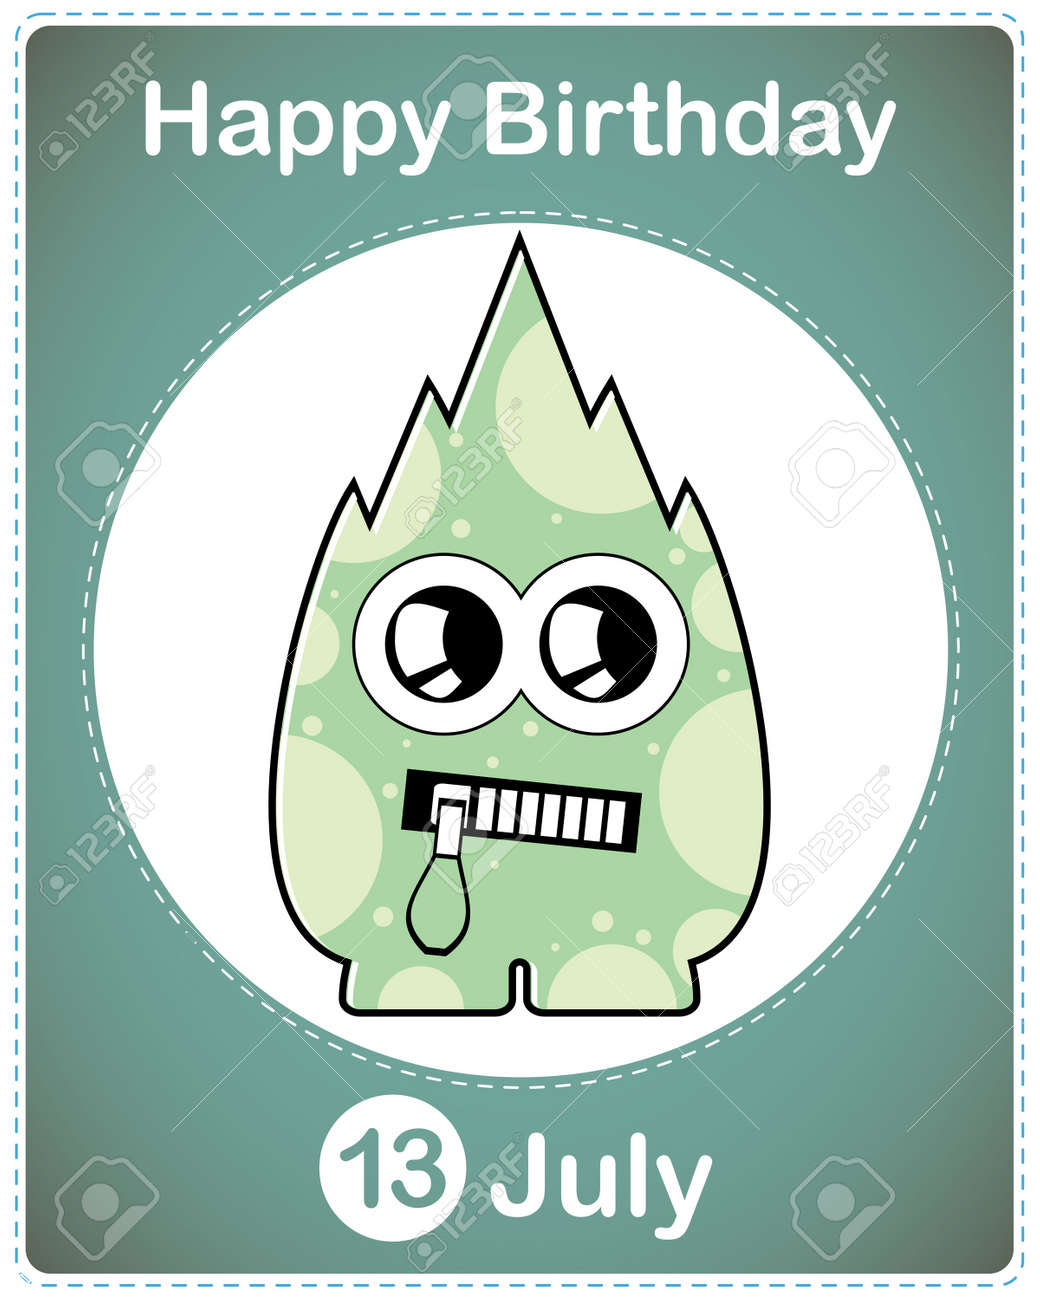 Happy birthday card with cute cartoon monster Stock Vector - 17978053